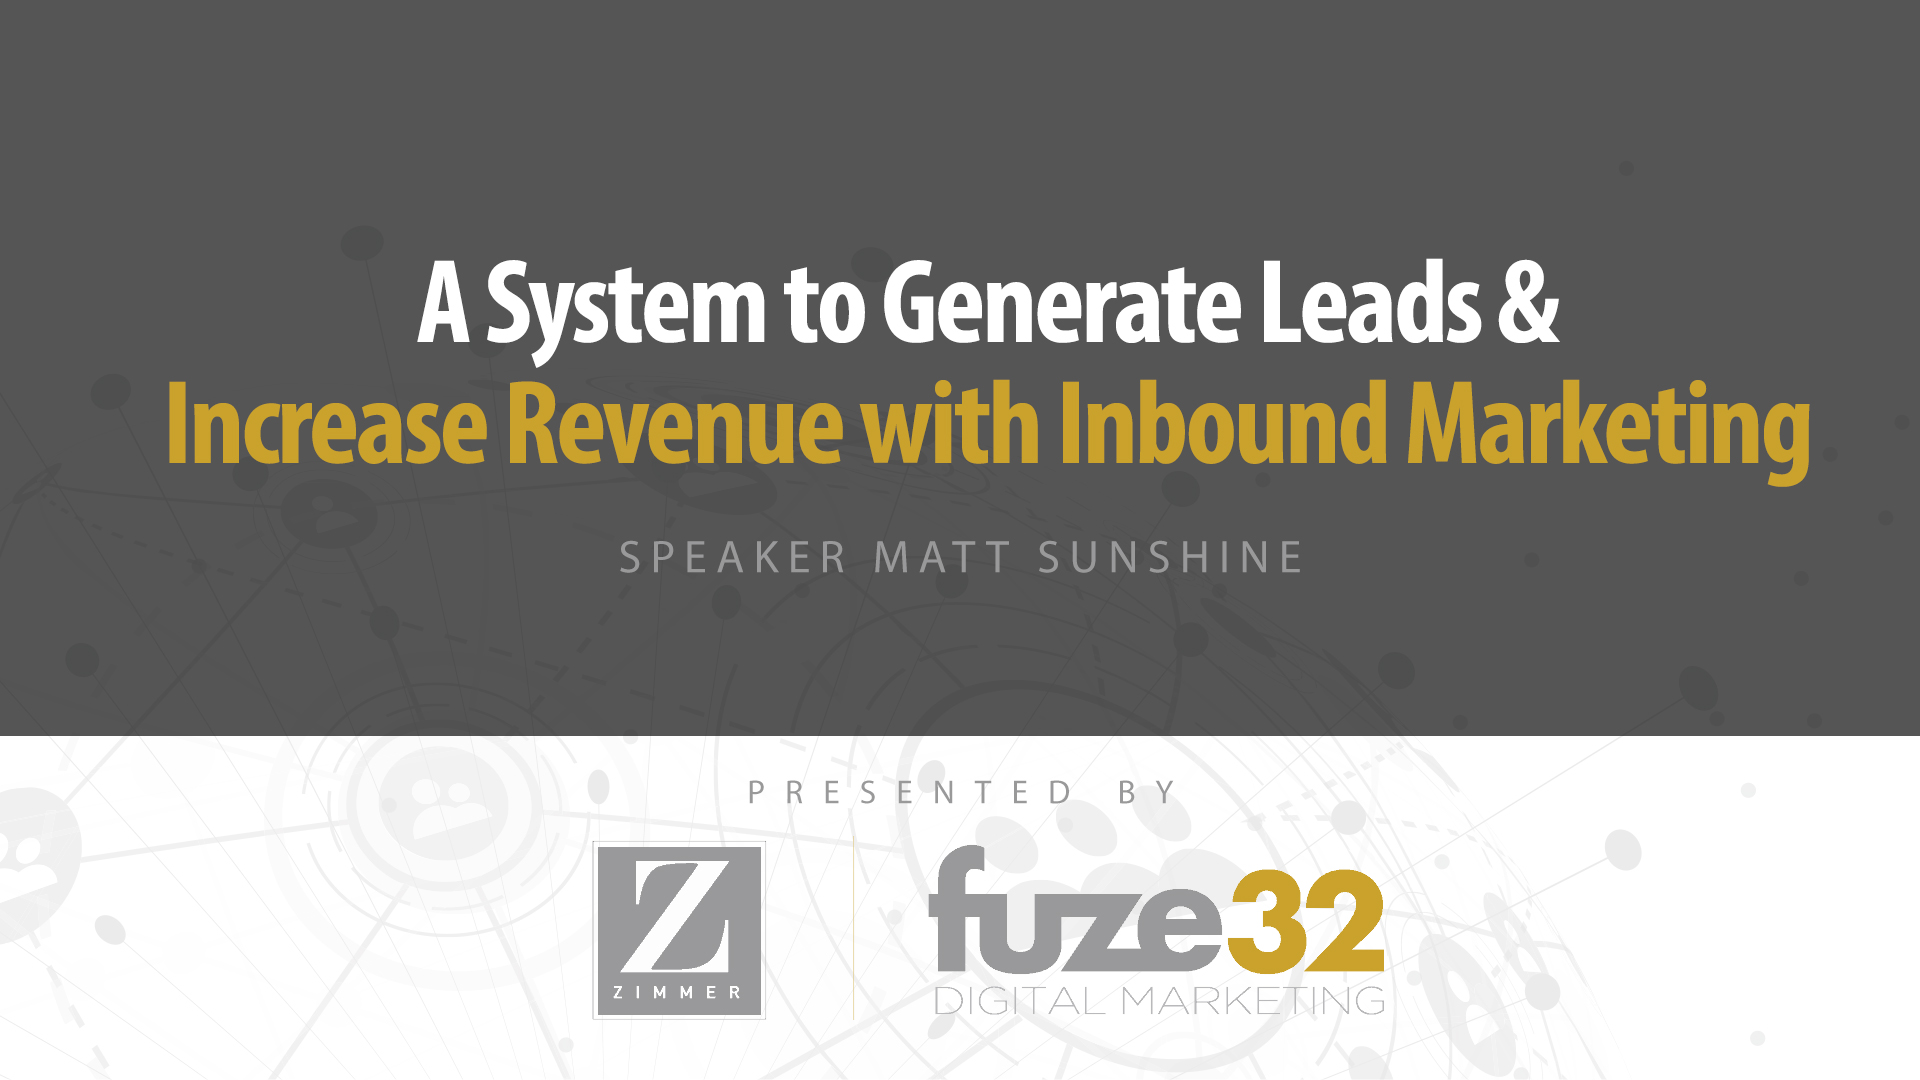 5 Reasons To Attend Our Inbound Seminar,